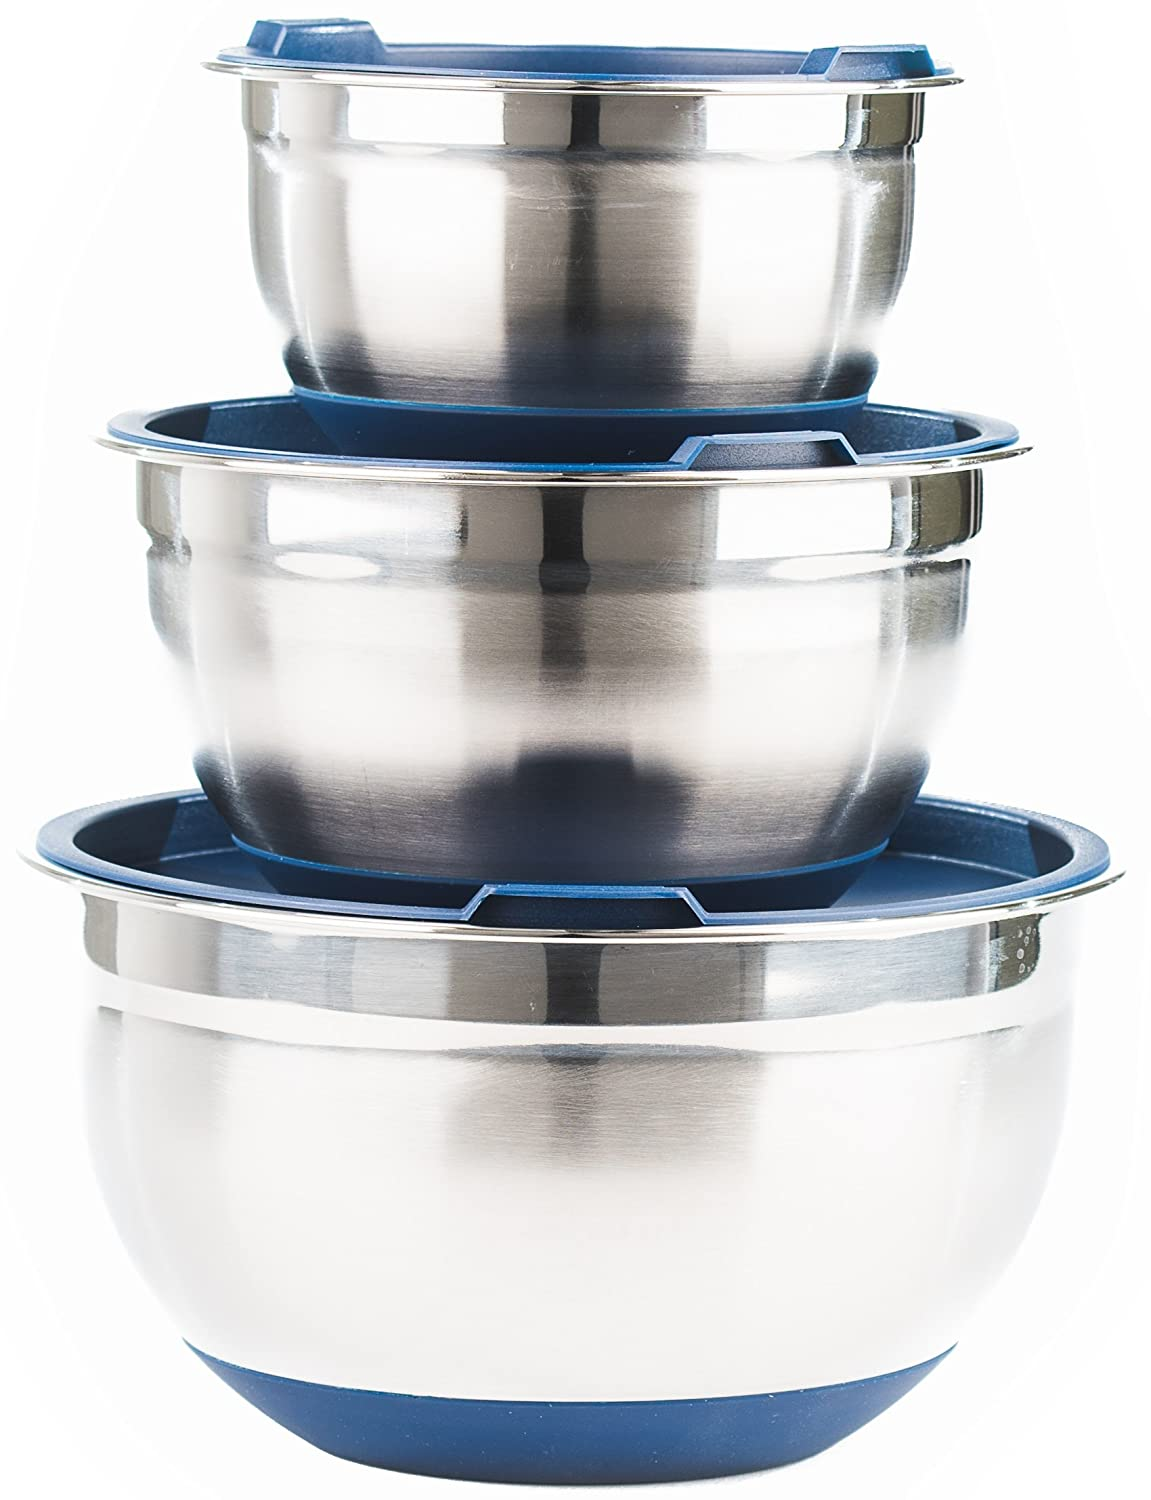 Fitzroy and Fox 3 Piece Stainless Steel Mixing Bowl Set